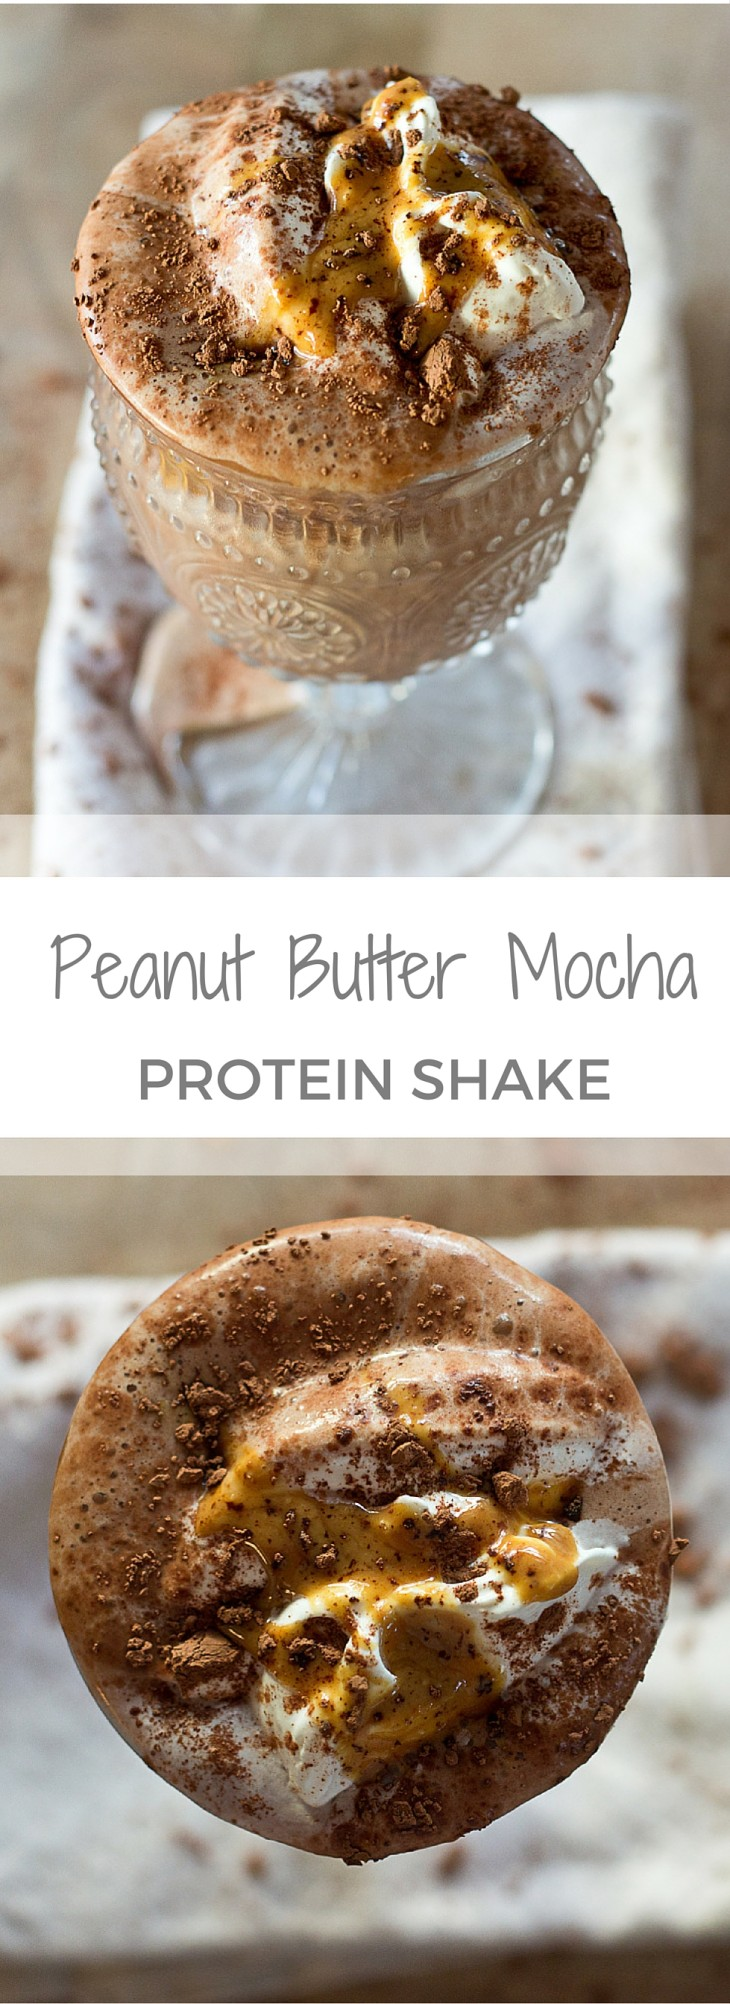 Chocolate + Peanut Butter + Coffee = died and gone to heaven! This is seriously the best combo ever invented all blended up into a healthy low sugar Peanut Butter Mocha Protein Shake! WINNING! Dairy Free. Vegan.